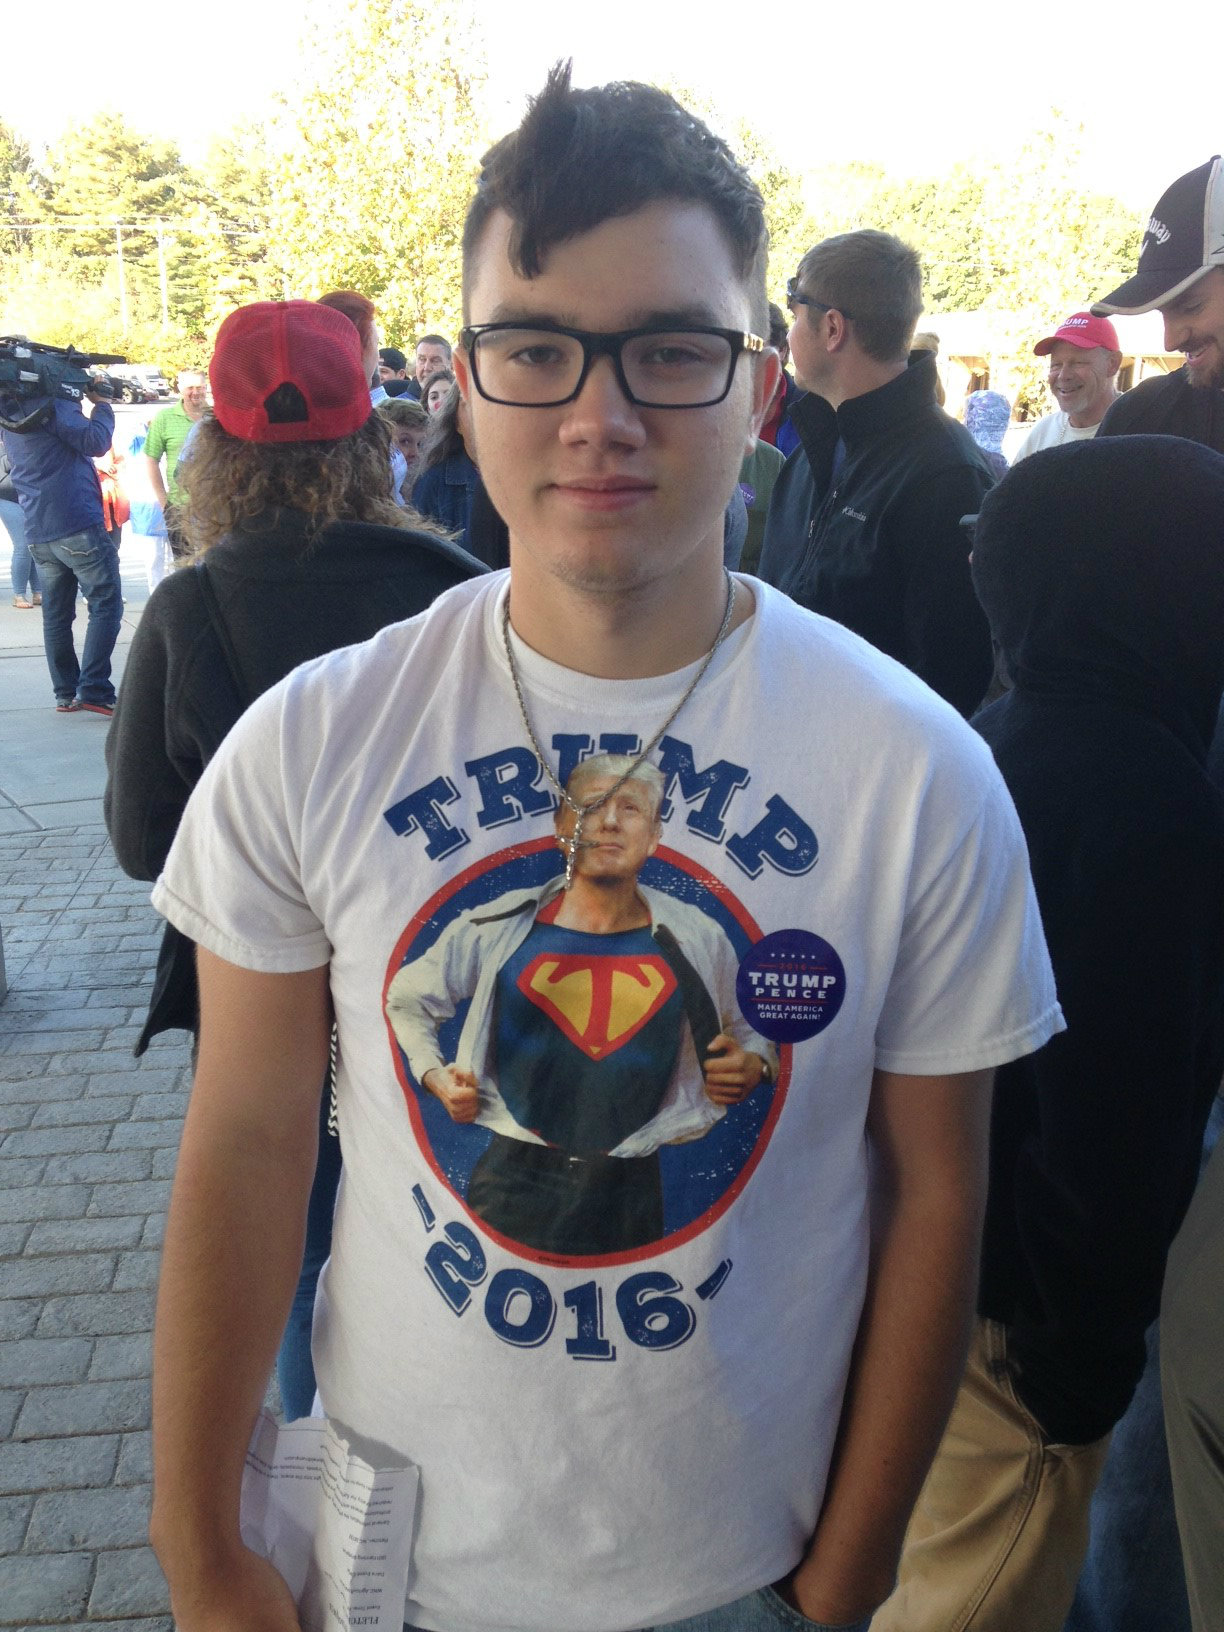 A Trump supporter shows off his shirt. (Photo credit: WLOS staff)